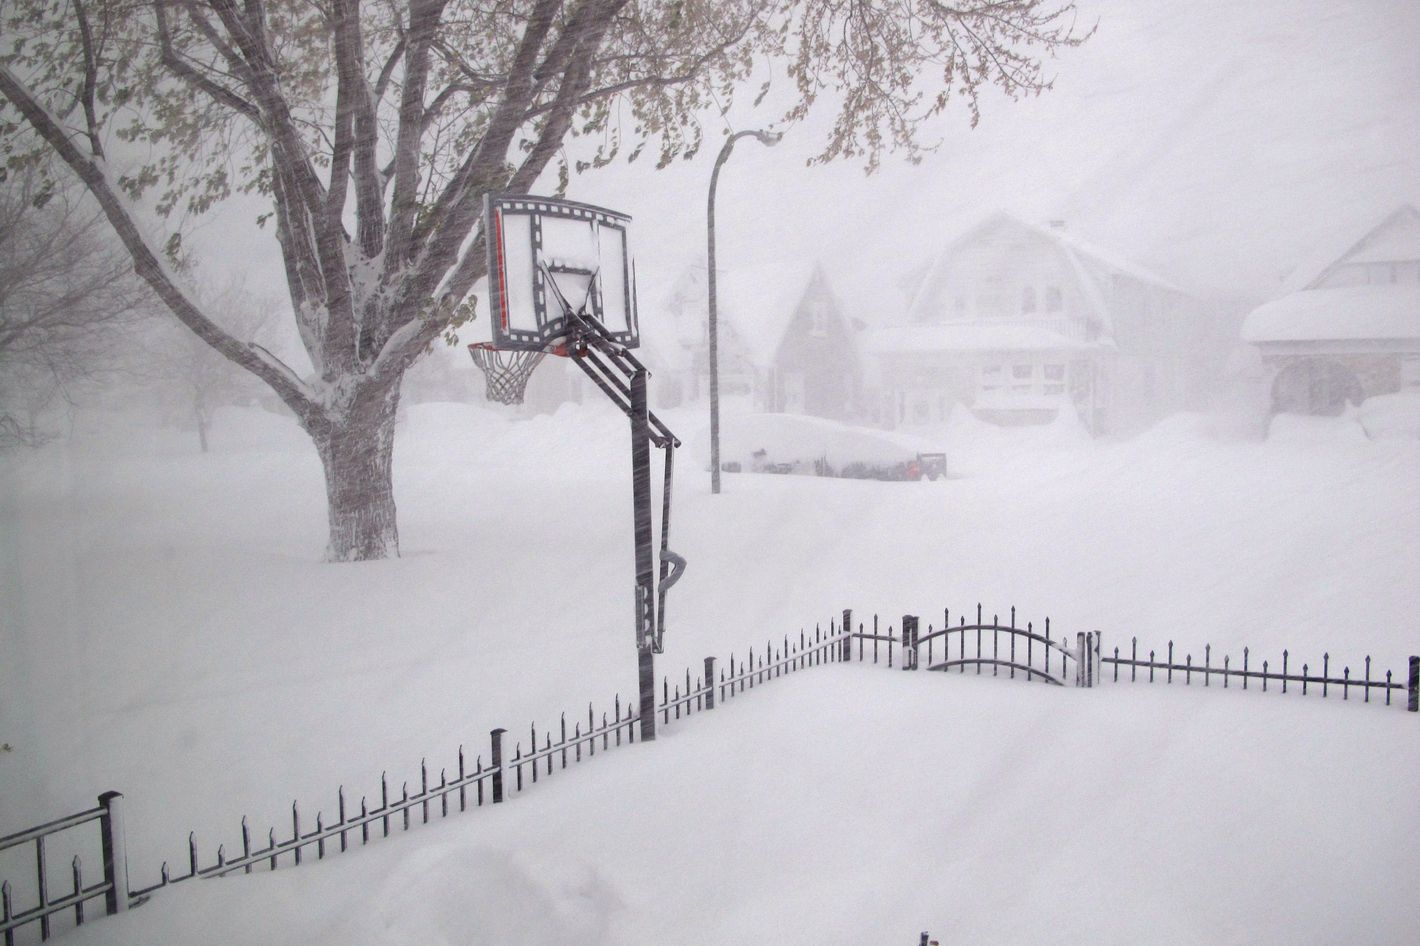 crazy photos from the snowstorm that pummeled western new york